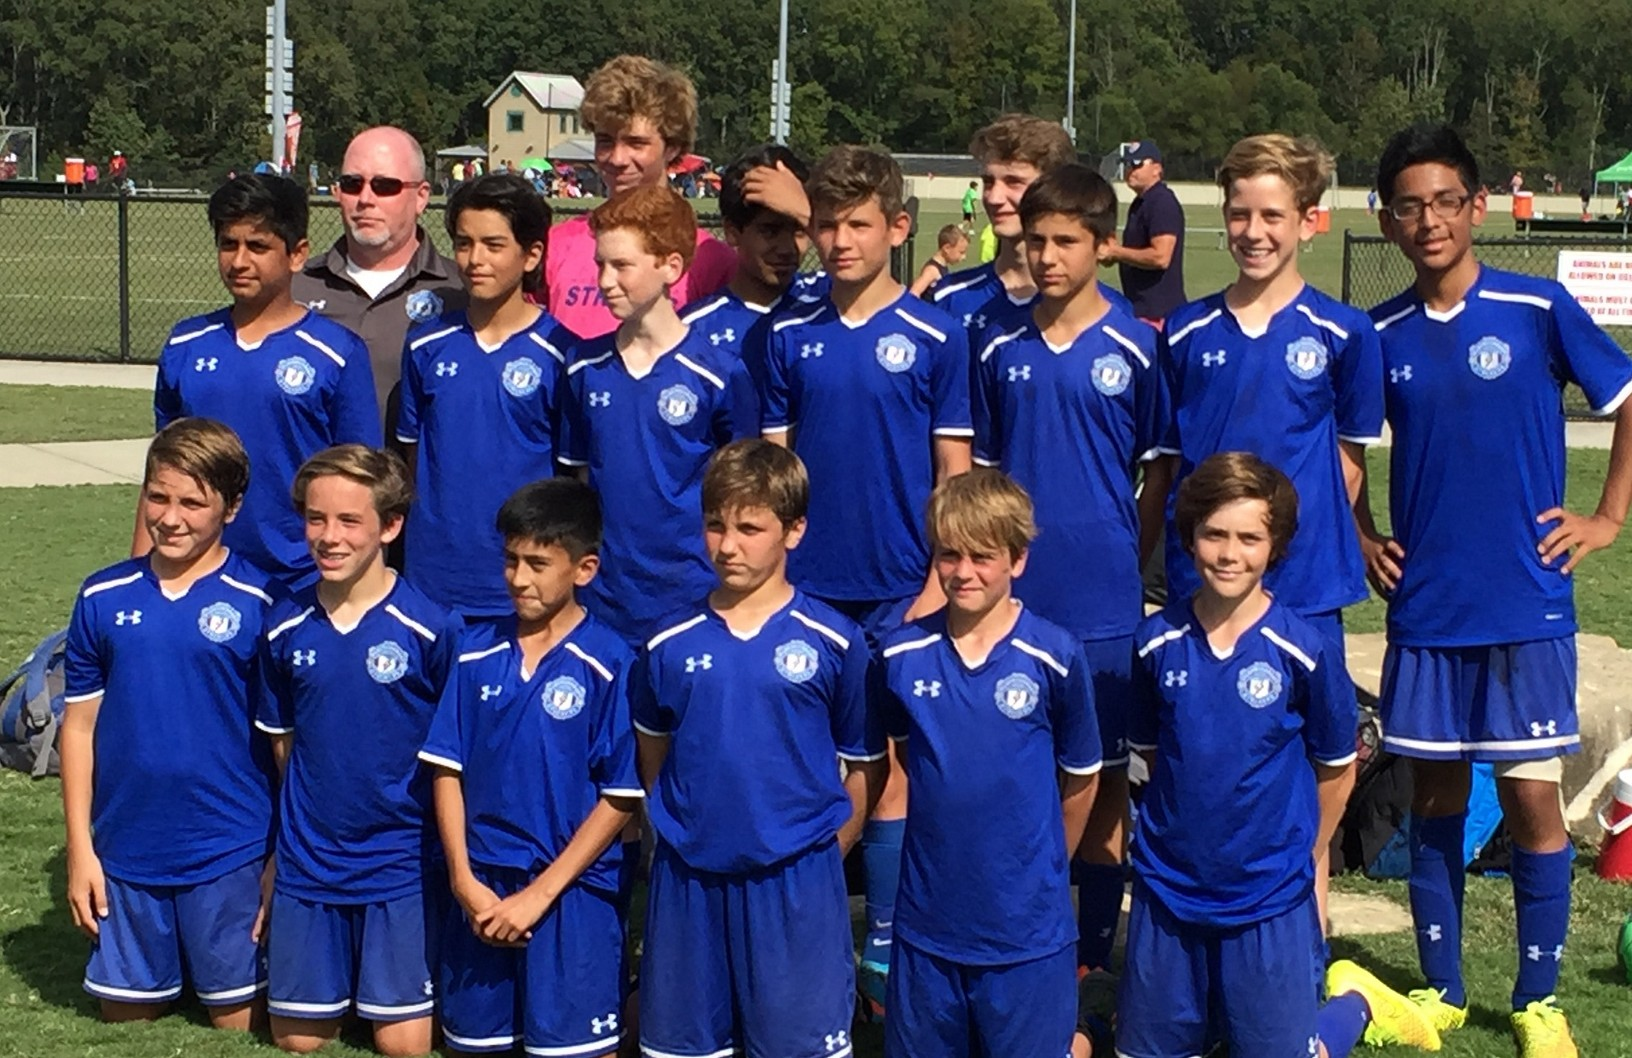 Strikers 02 Premier team was named Champion in the Under 14 Boys First Division